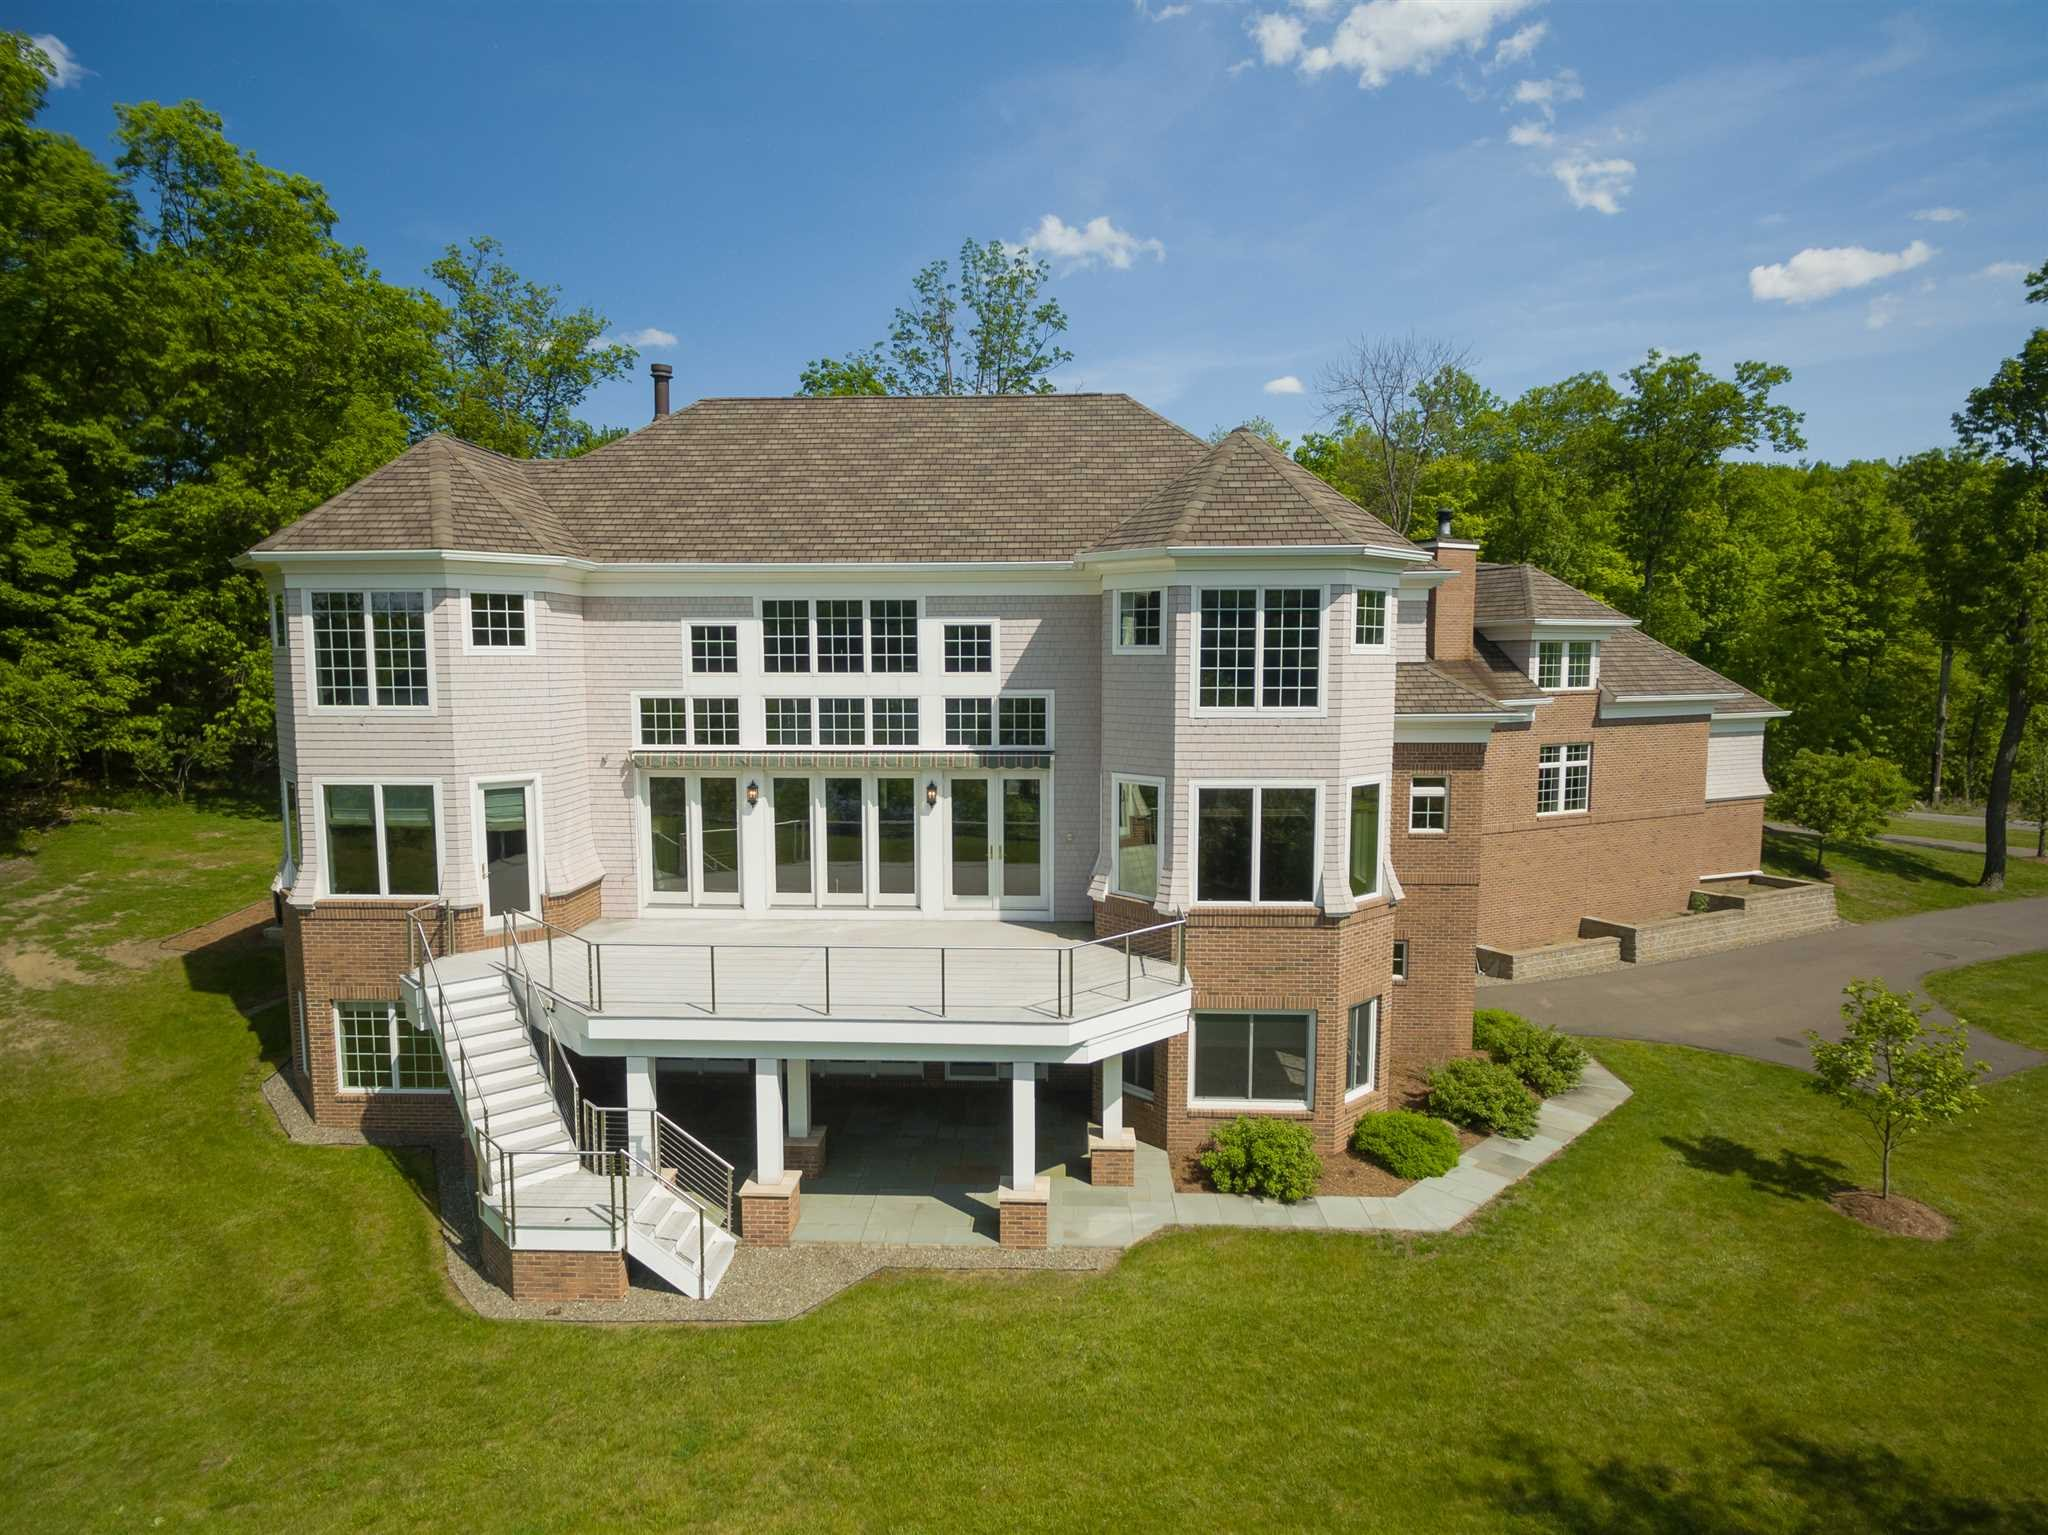 Single Family Home for Sale at 130 RIVER Road 130 RIVER Road Hyde Park, New York 12538 United States